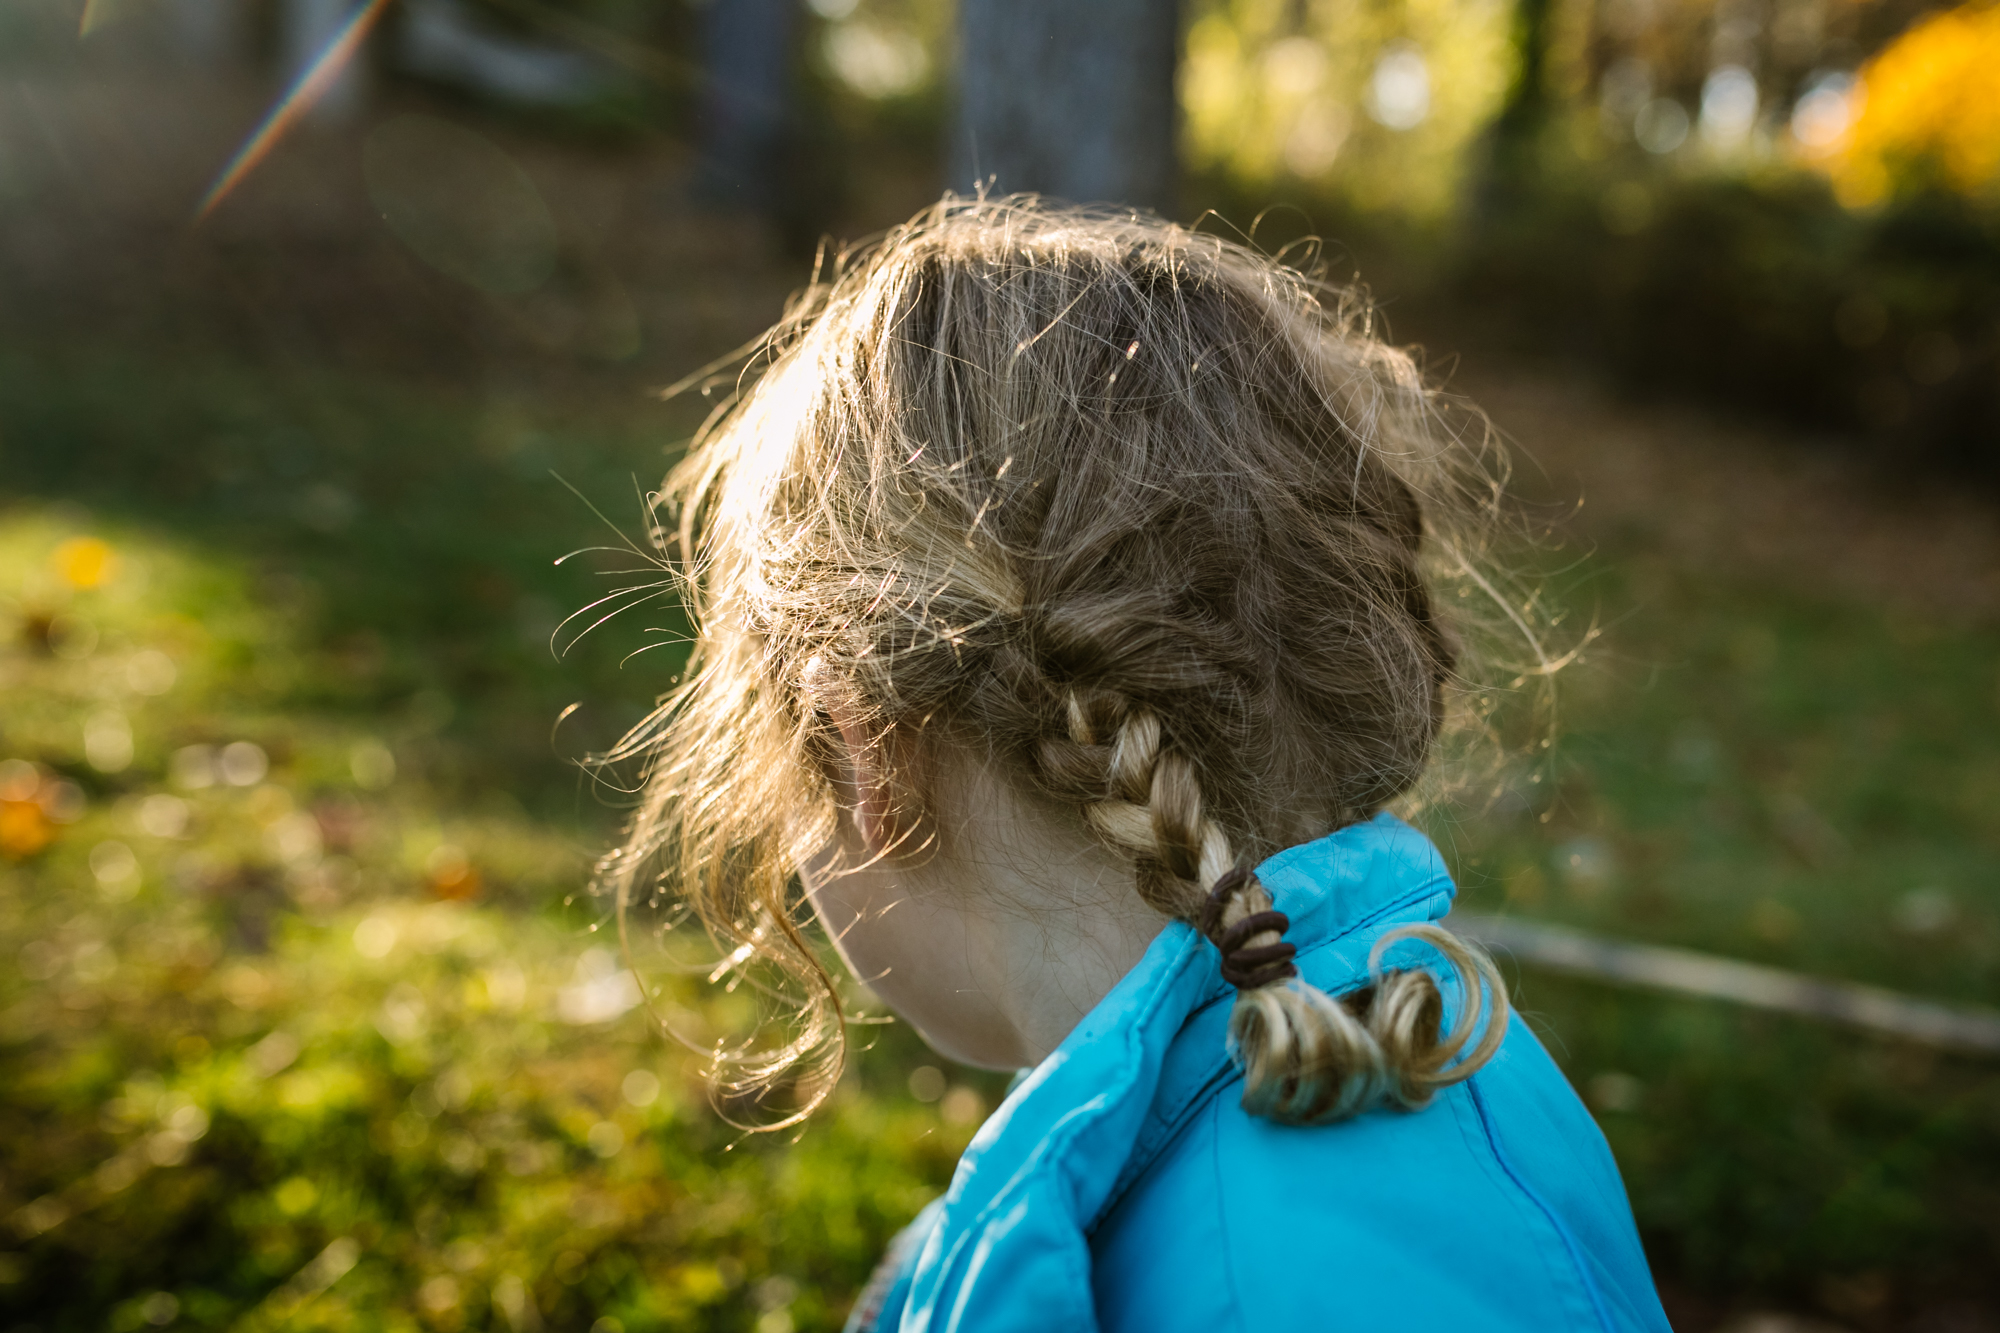 A picture of a girl's braid